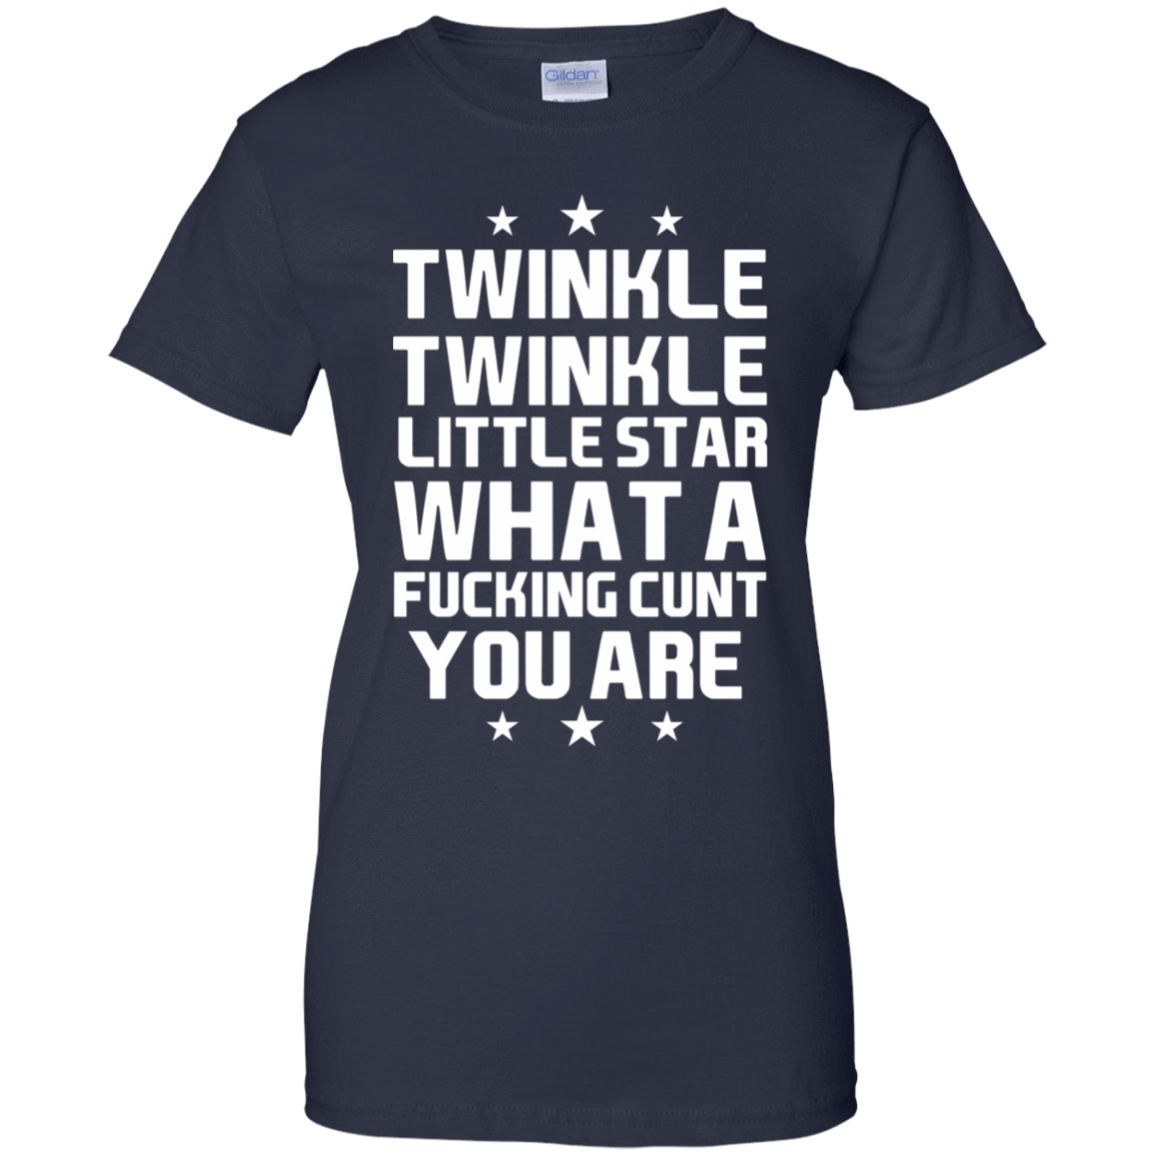 Twinkle Twinkle Little Star What A Fucking Cunt You Are T-Shirts, Hoodie, Tank 939-9259-77772957-44765 - Tee Ript